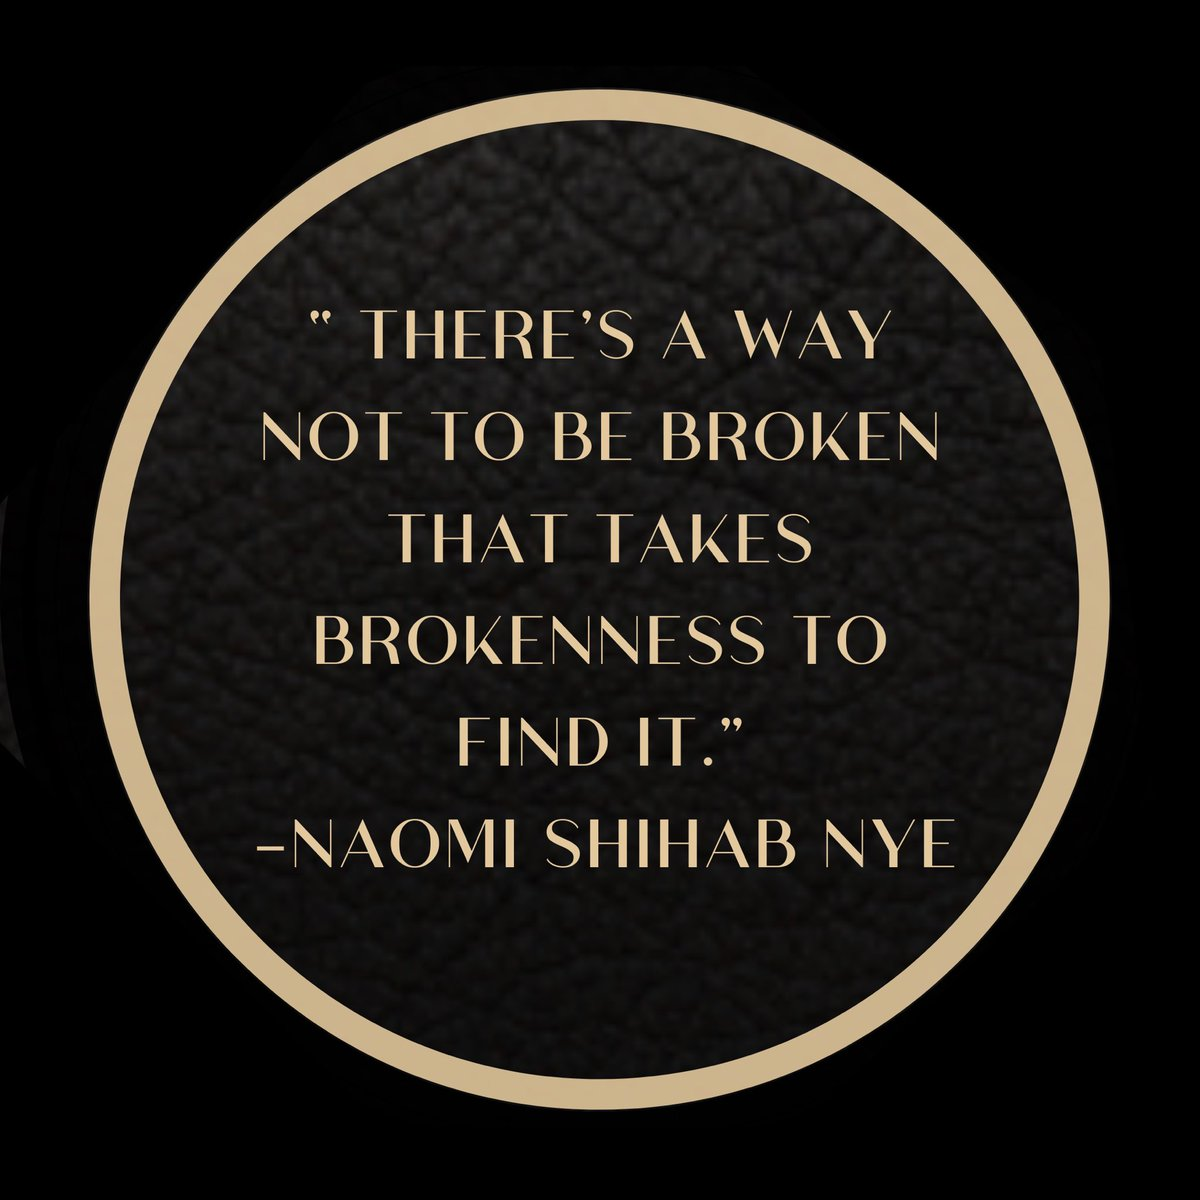 Reminder that good can come from bad! Nye writes in her poem that we all make mistakes, yet redemption from these give us growth. #ThursdayThought